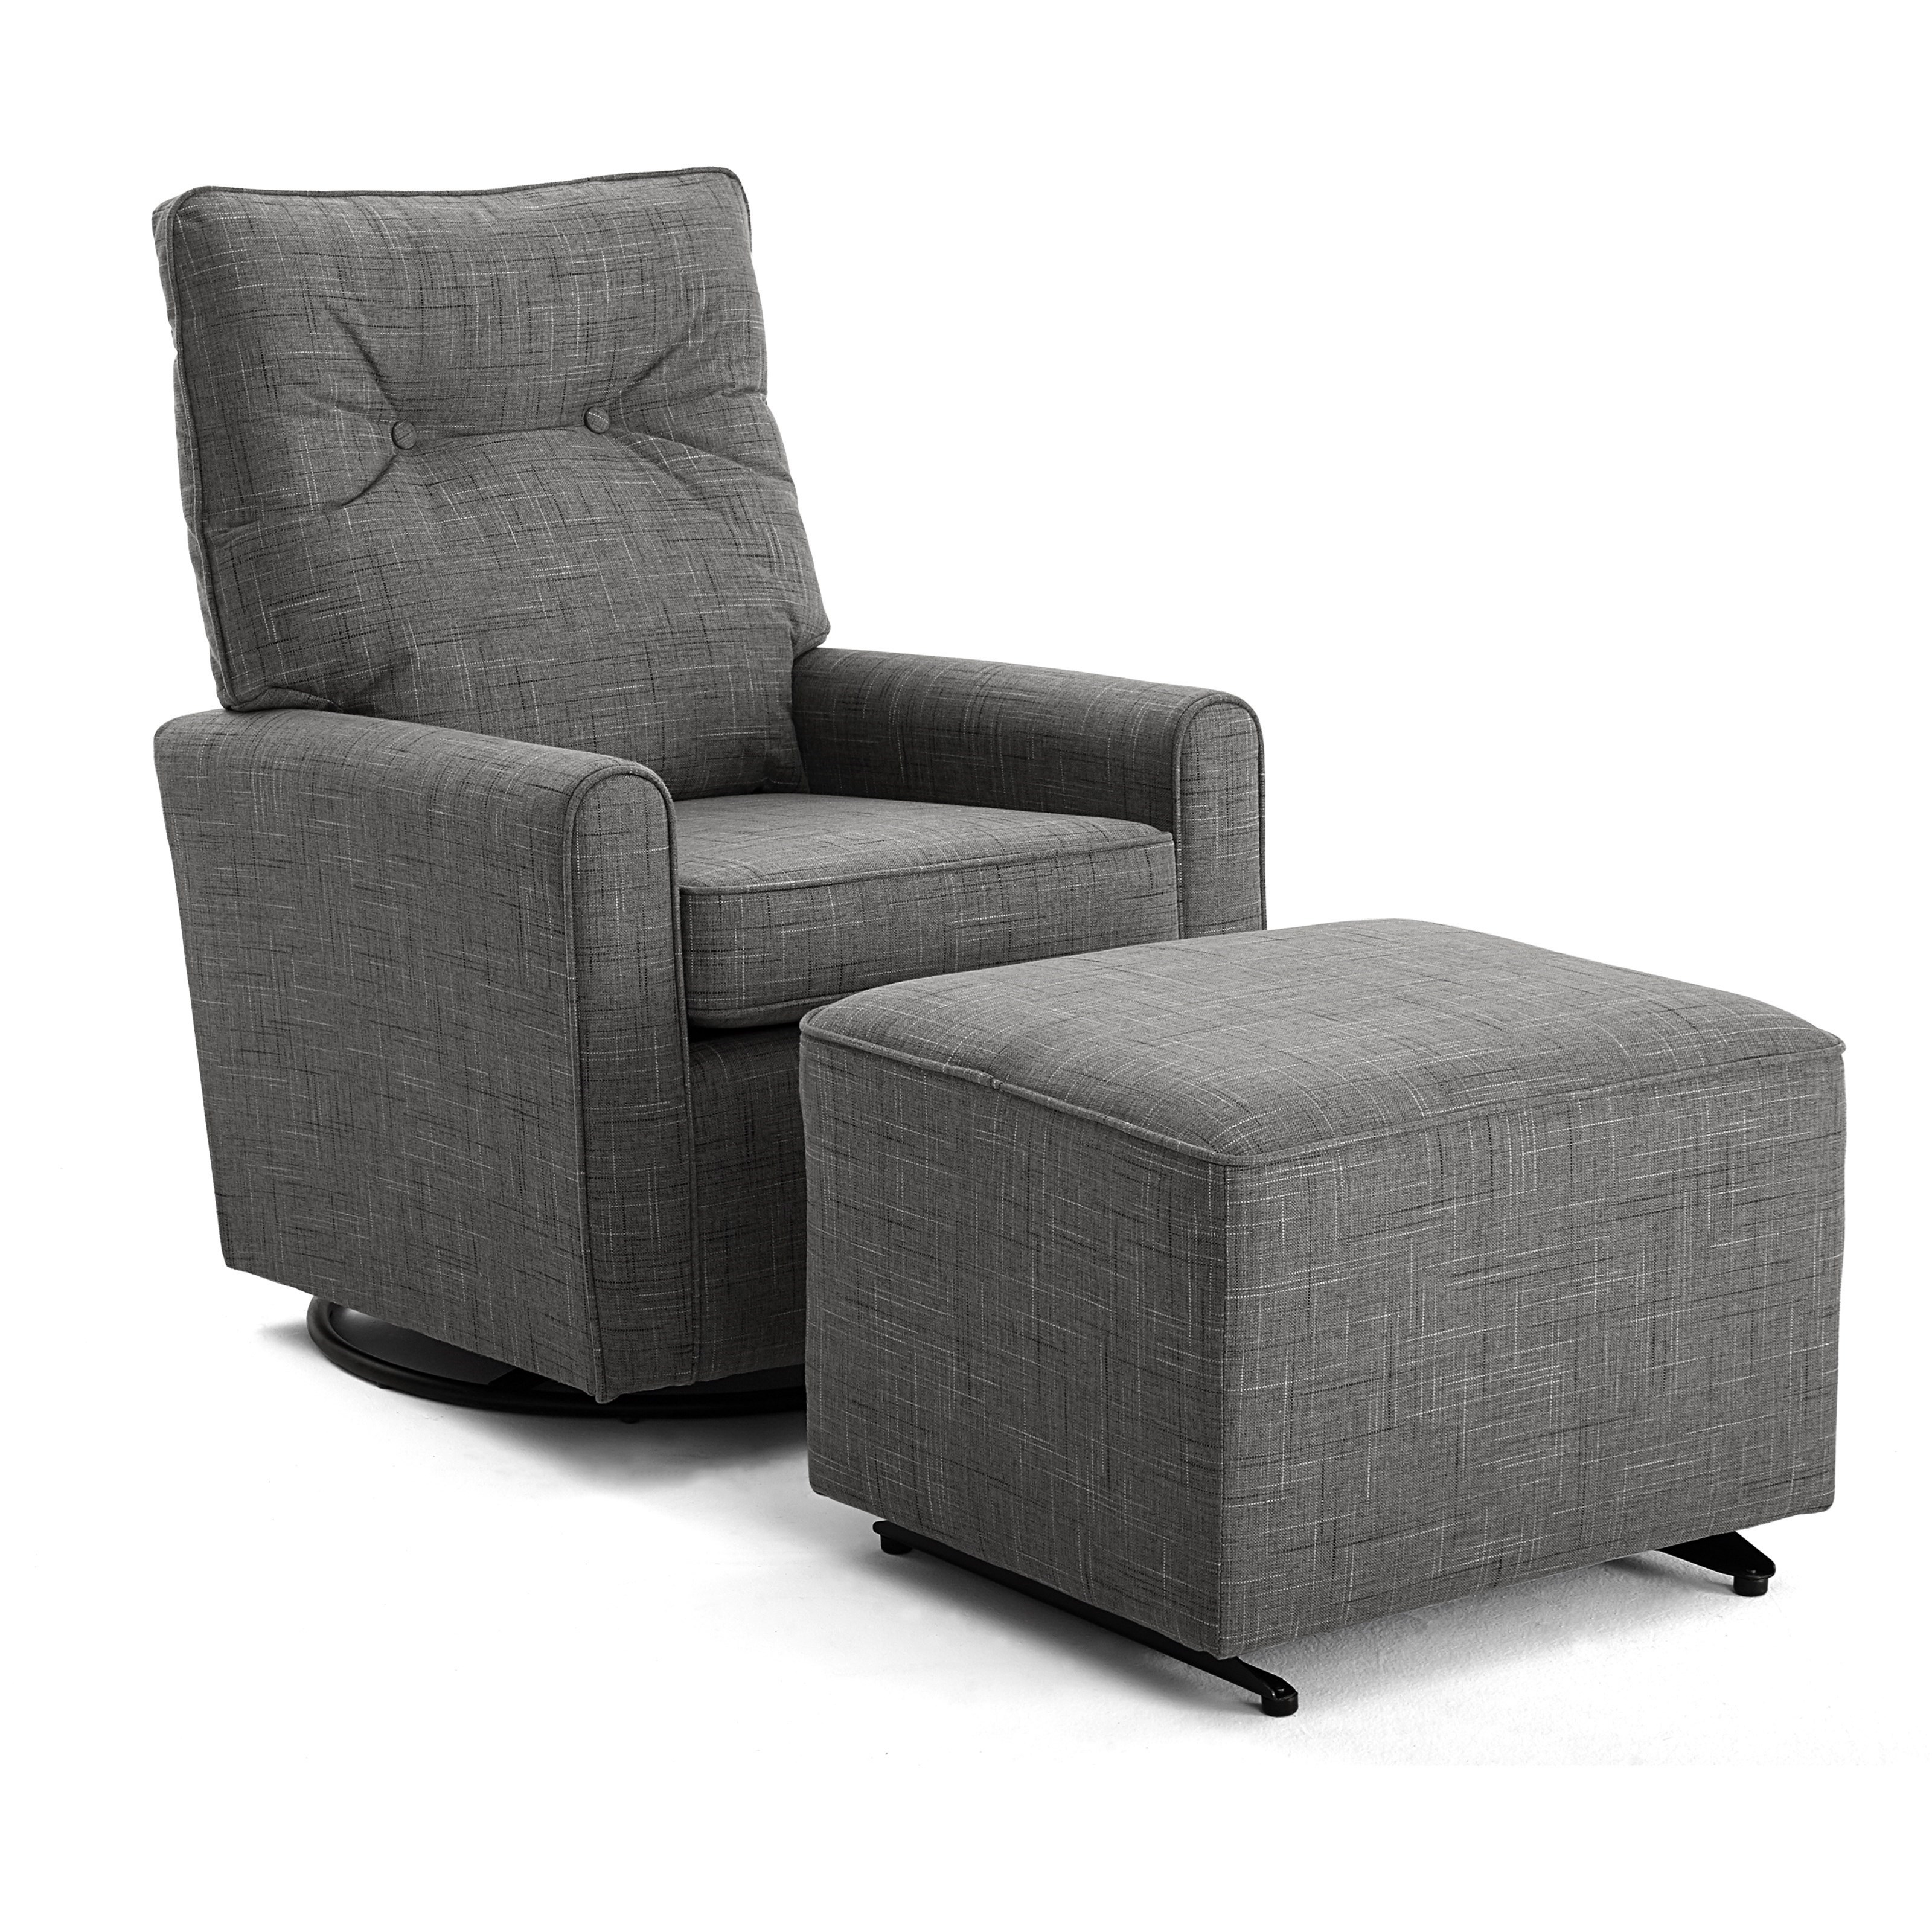 Best Xpress - Phylicia Swivel Glider Chair & Ottoman Set by Best Home Furnishings at Rife's Home Furniture